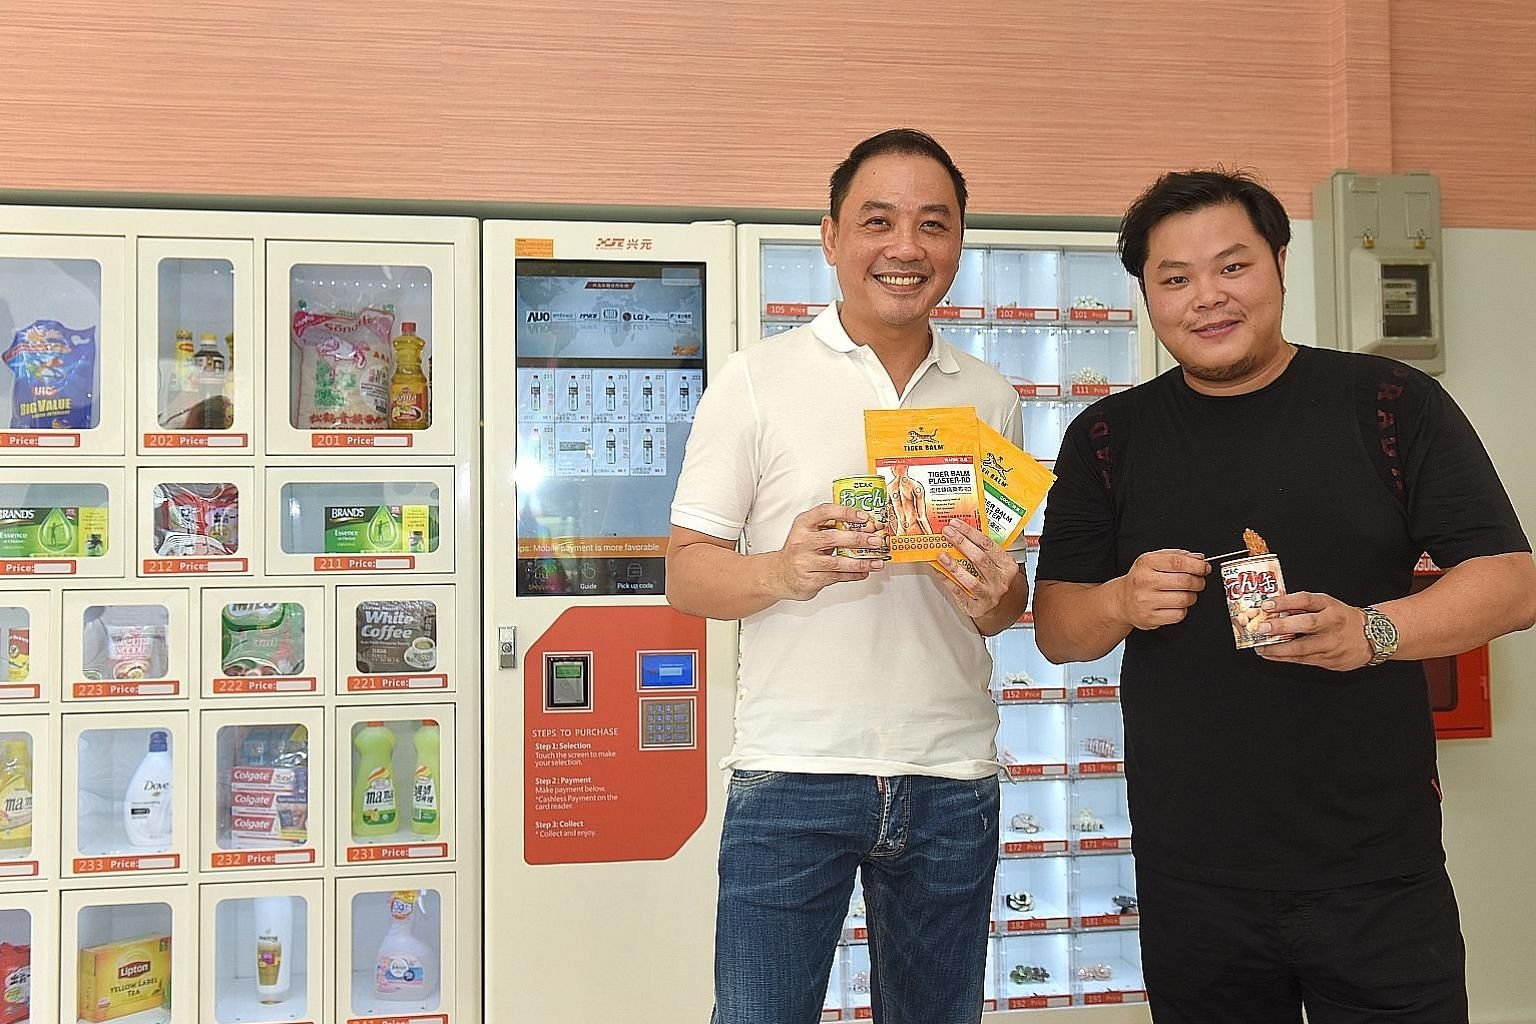 No Signboard Seafood chairman Sam Lim (far left) and his business partner Lam Zhi Loong invested about $1 million to set up The Ma2 Shop's six outlets.